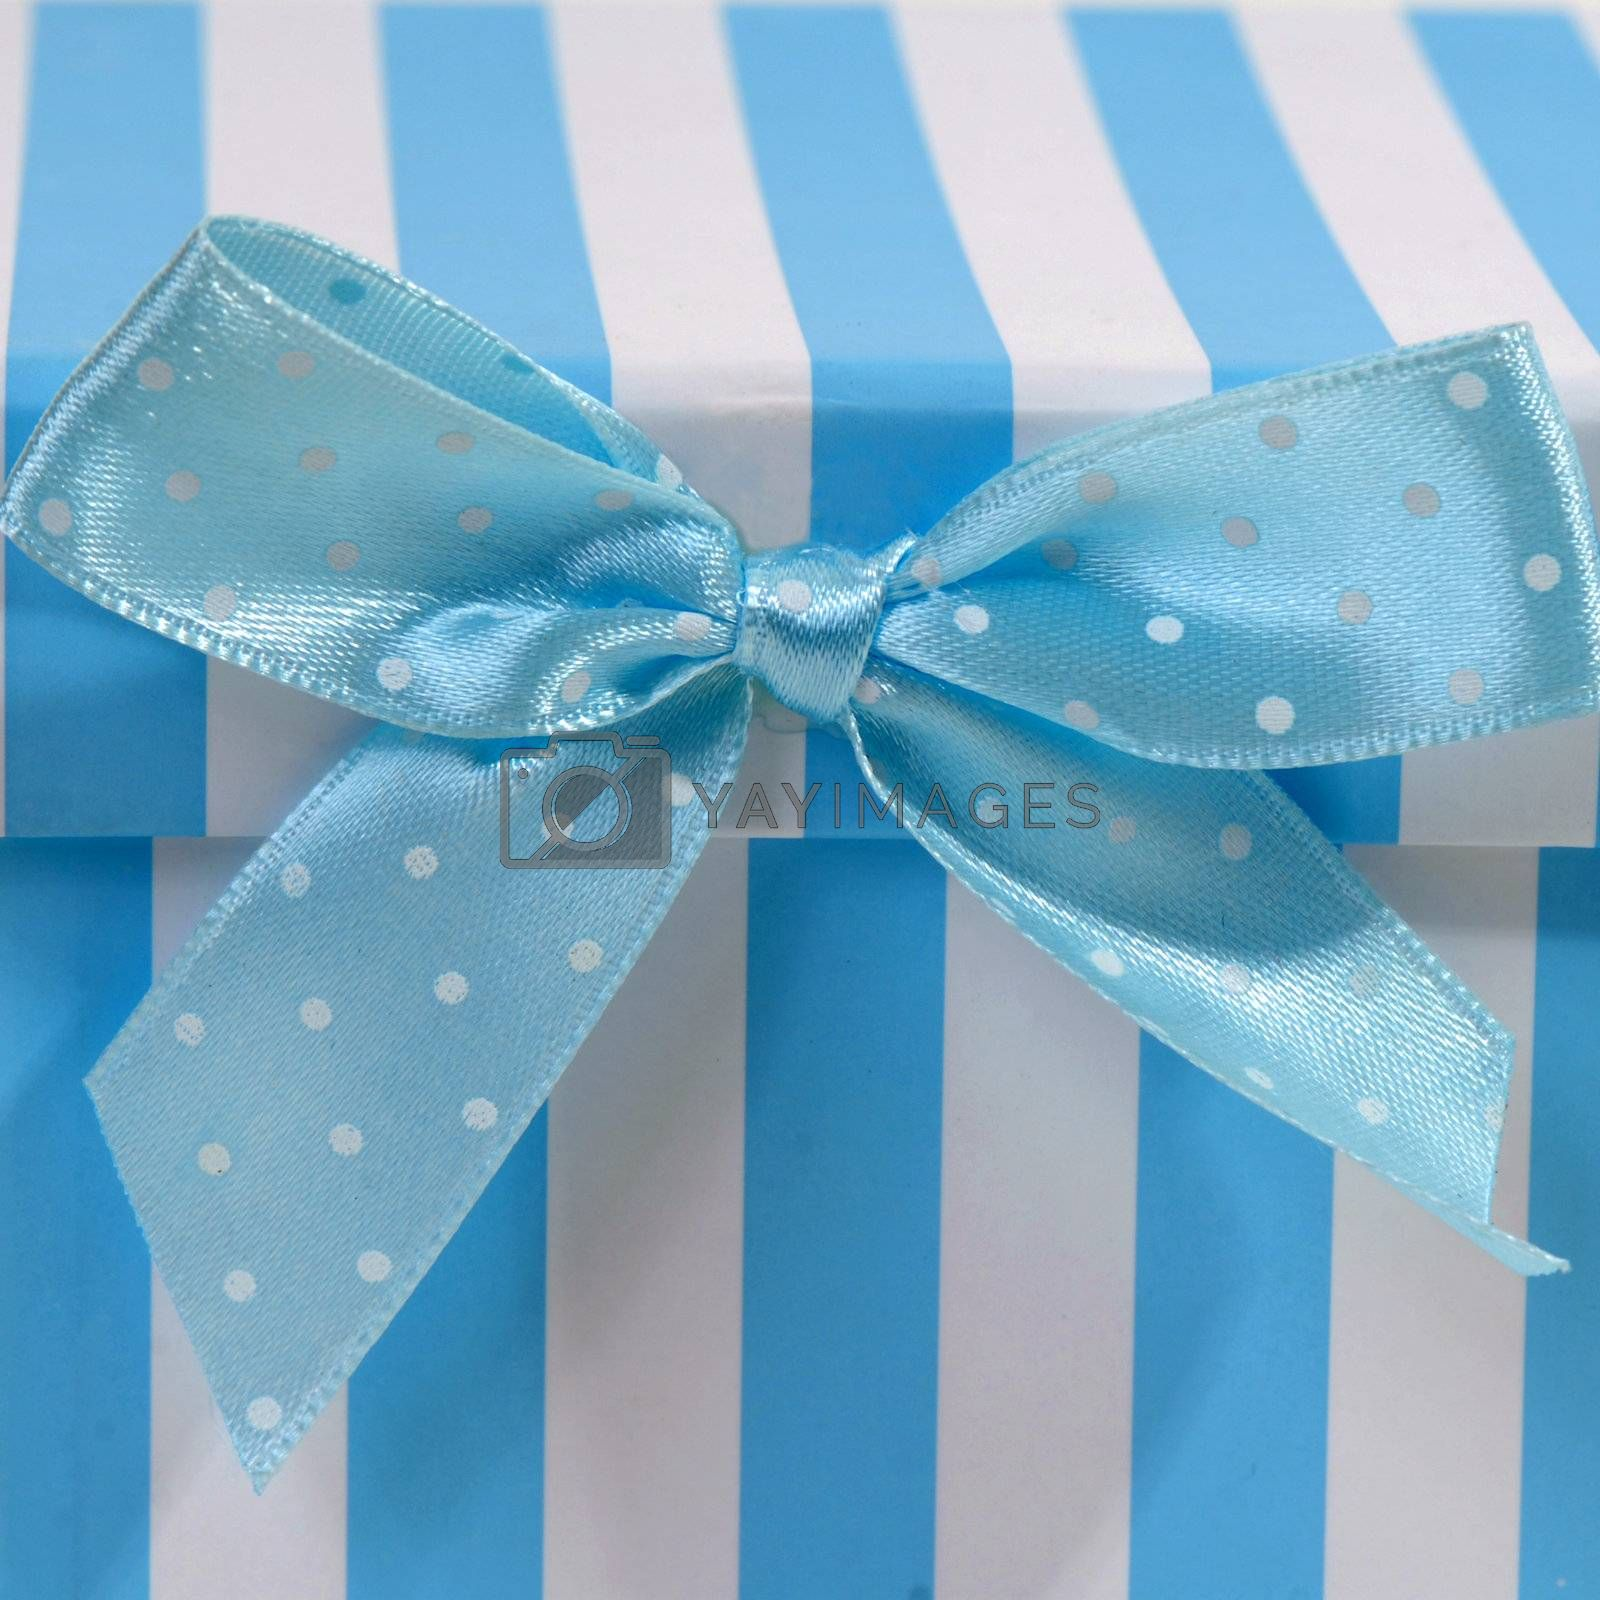 blue and white box with ribbon for gift